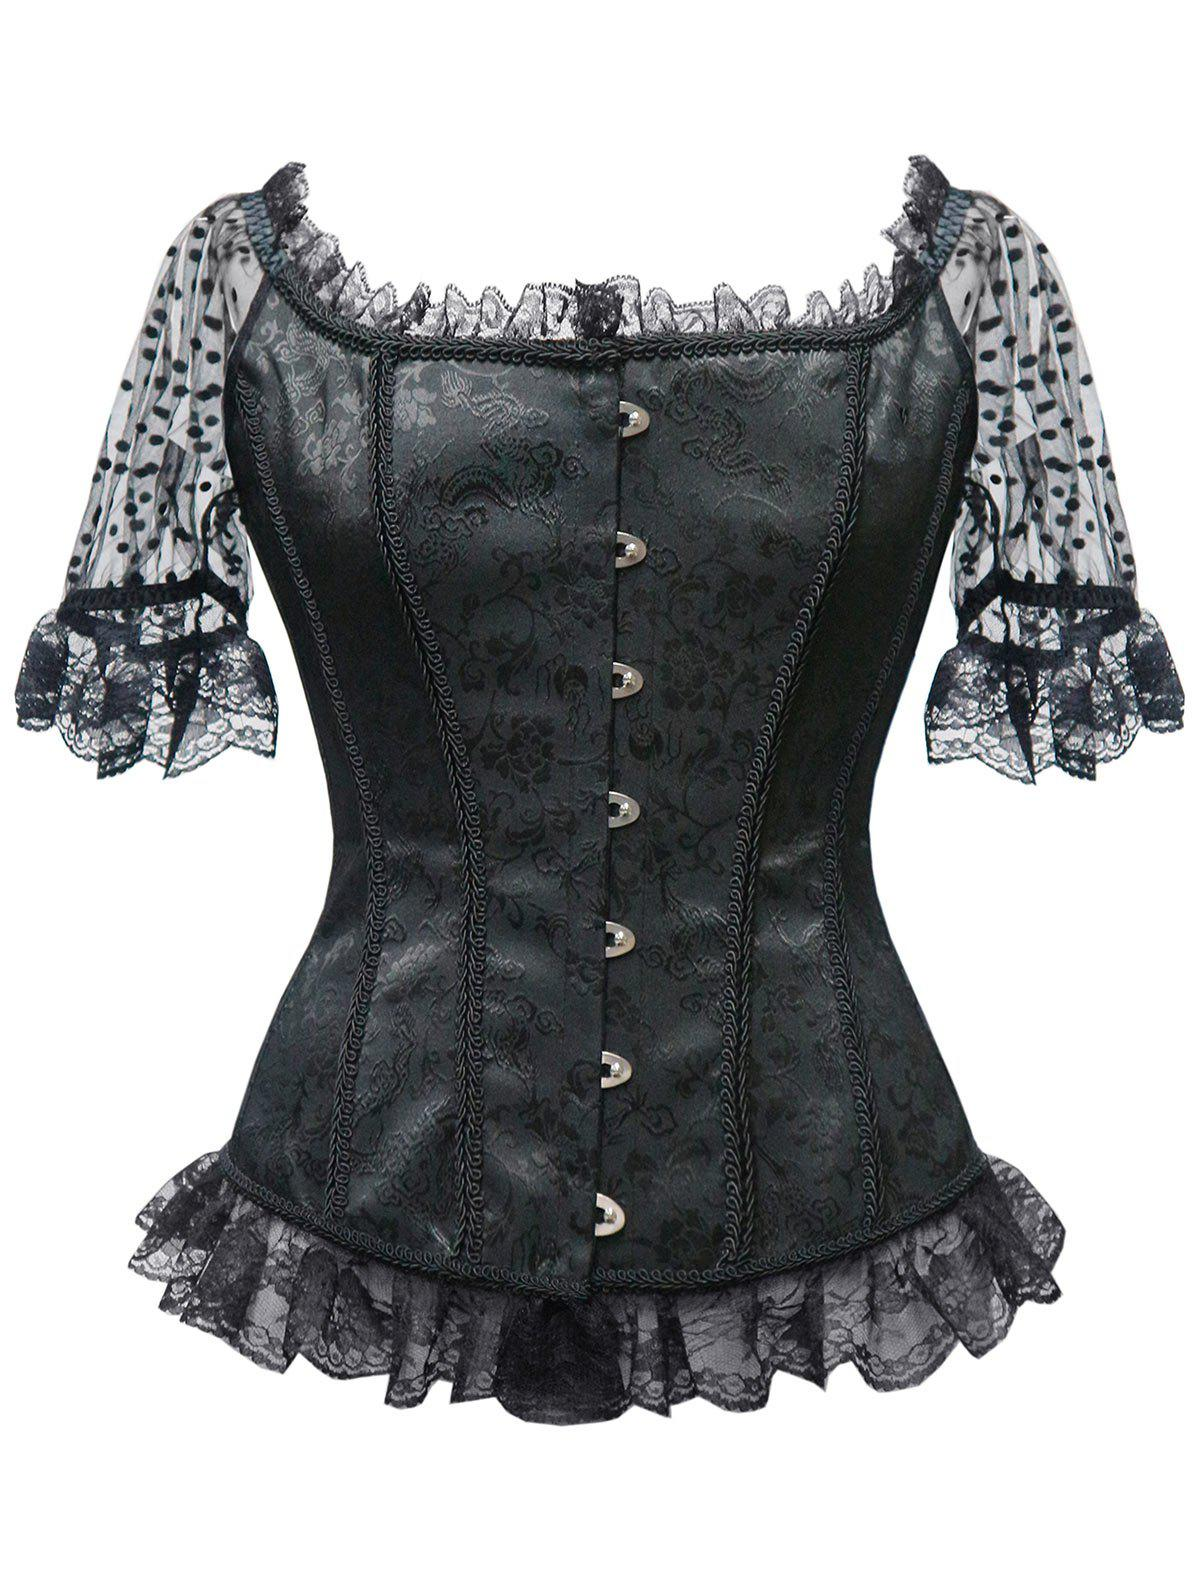 Affordable Lace Trim Brocade Steel Boned Corset Top